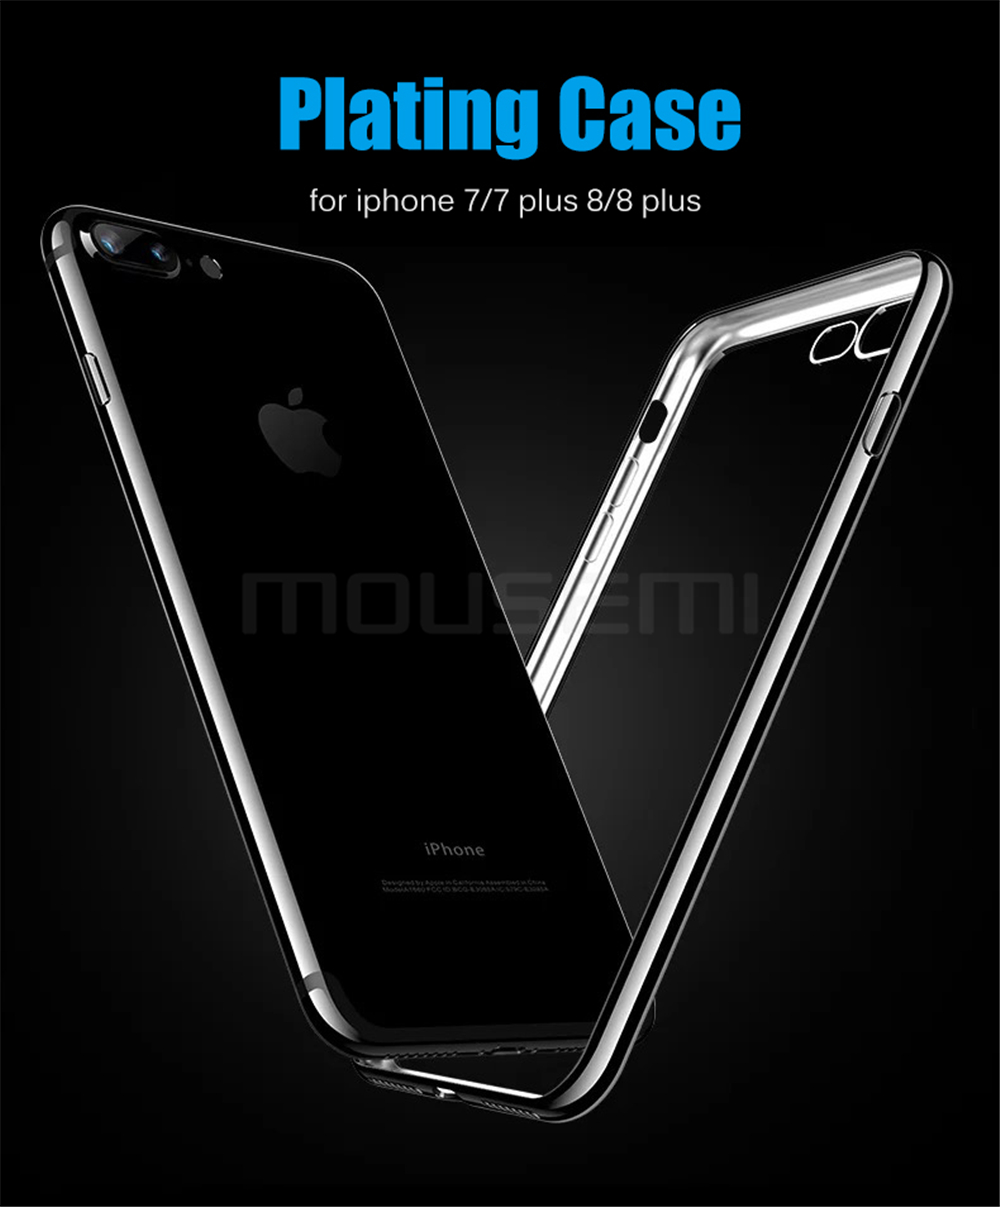 MOUSEMI Phone Cases For iPhone 7 Case Transparent Silicone Plating Soft Cover For iPhone 7 Plus Case For iPhone 77 Plus (1)